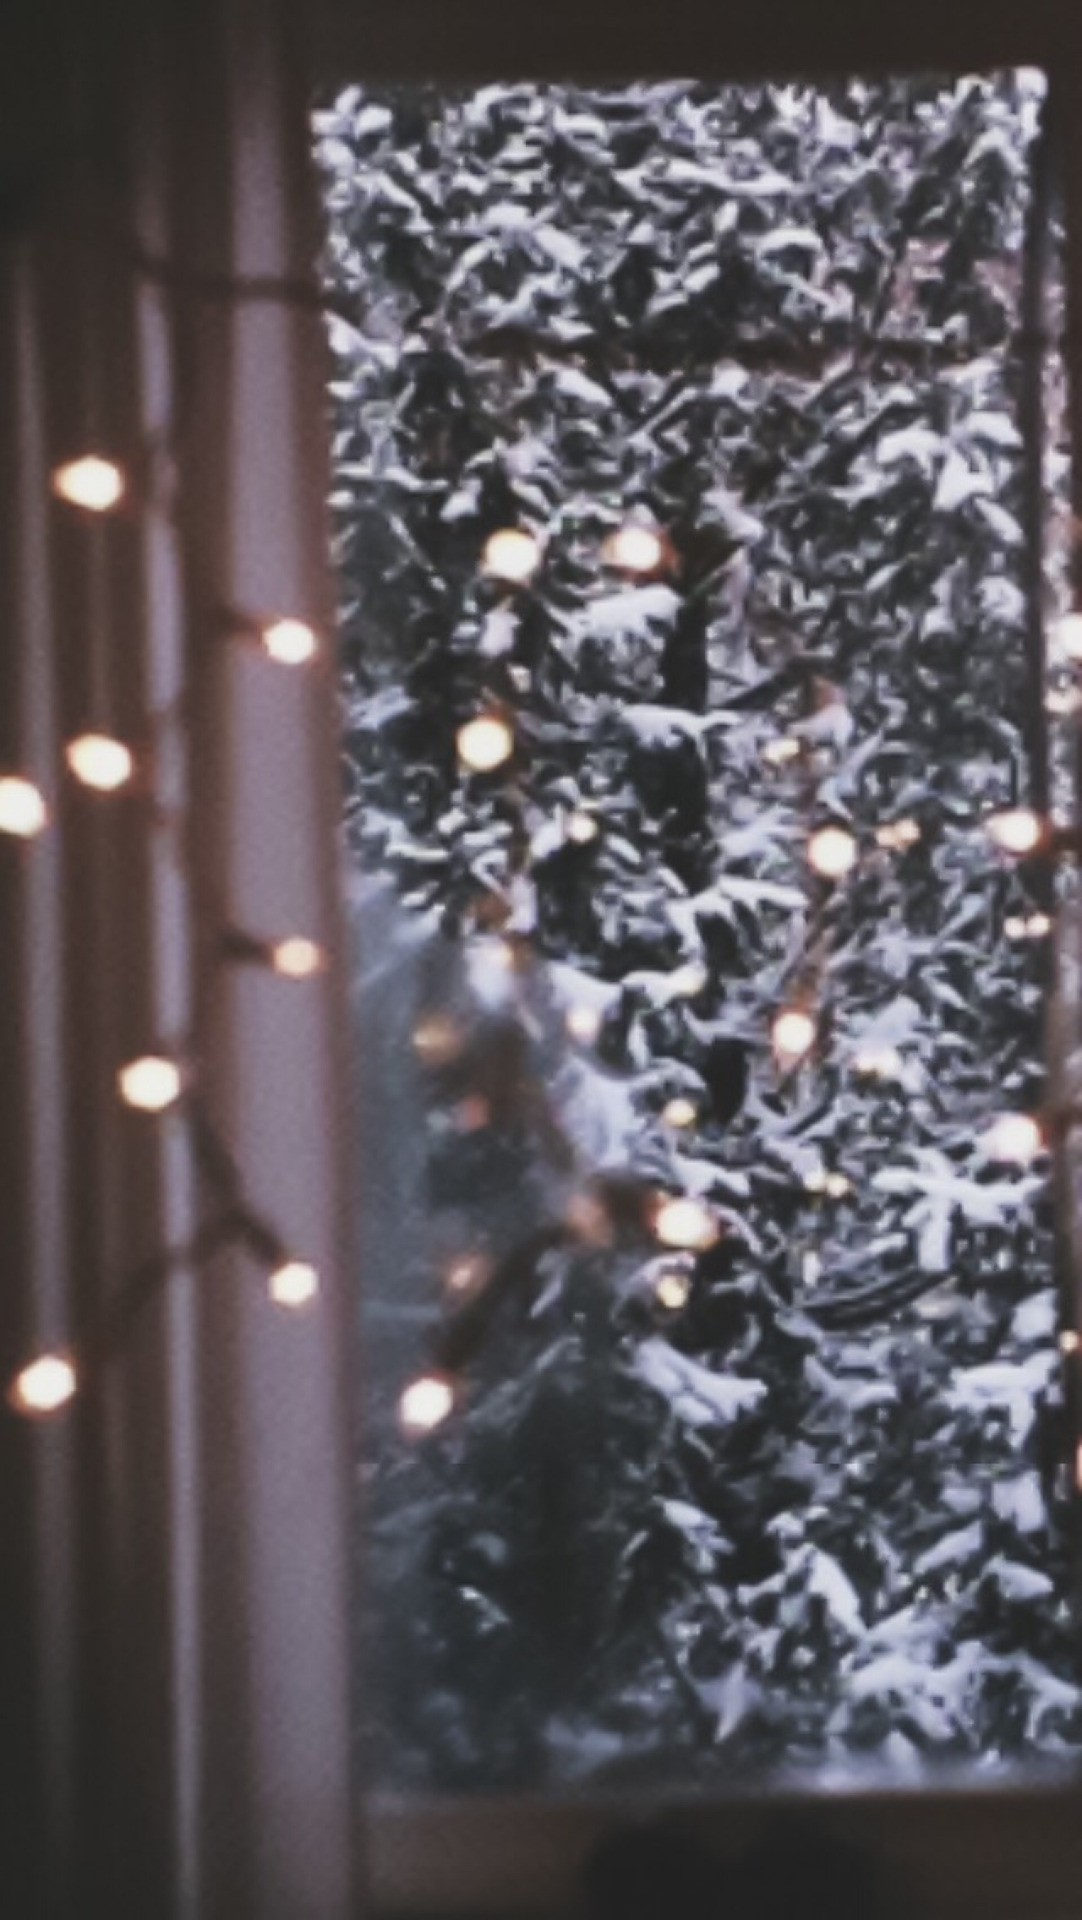 Download 64 Background Tumblr Christmas Gratis Terbaik